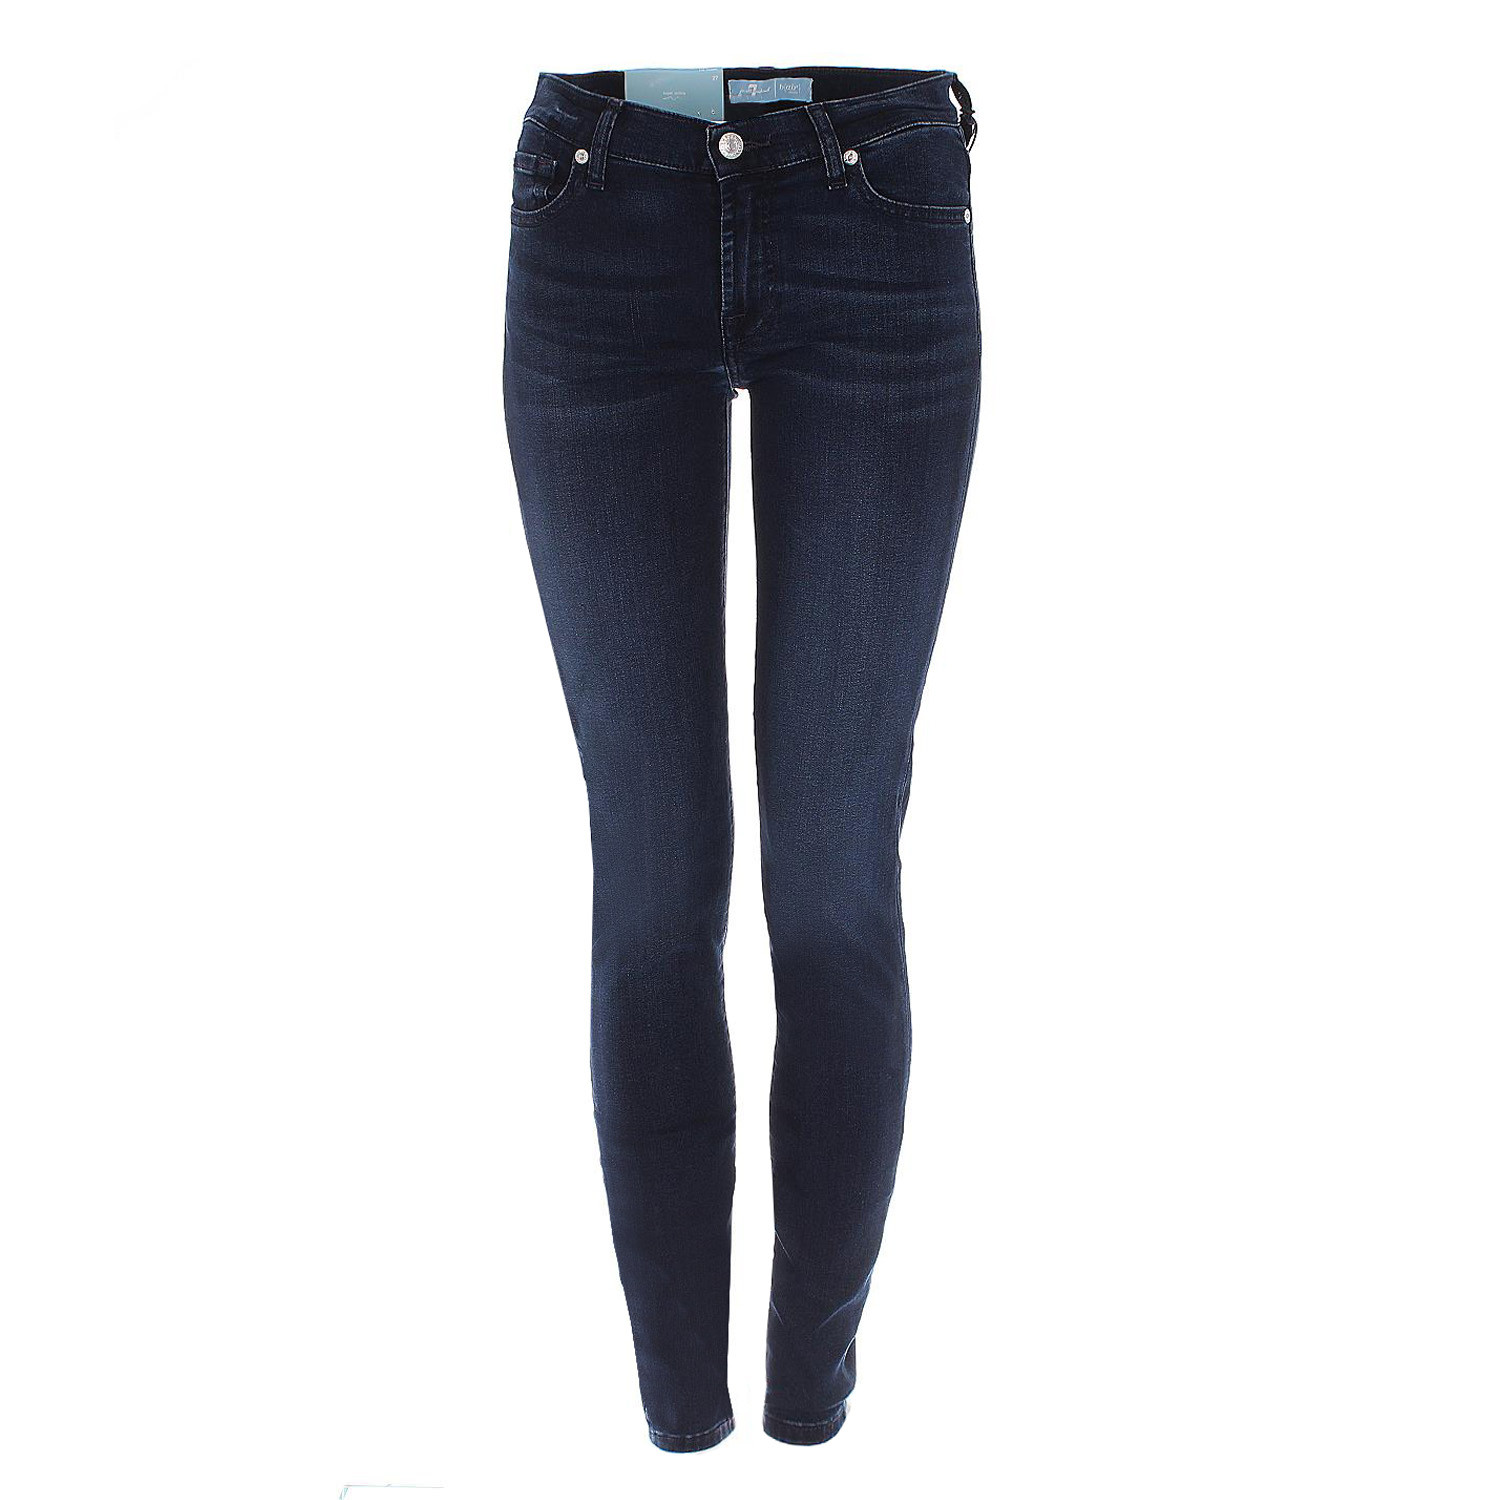 Afbeelding van 7 For All Mankind Jswt913cuf blauw